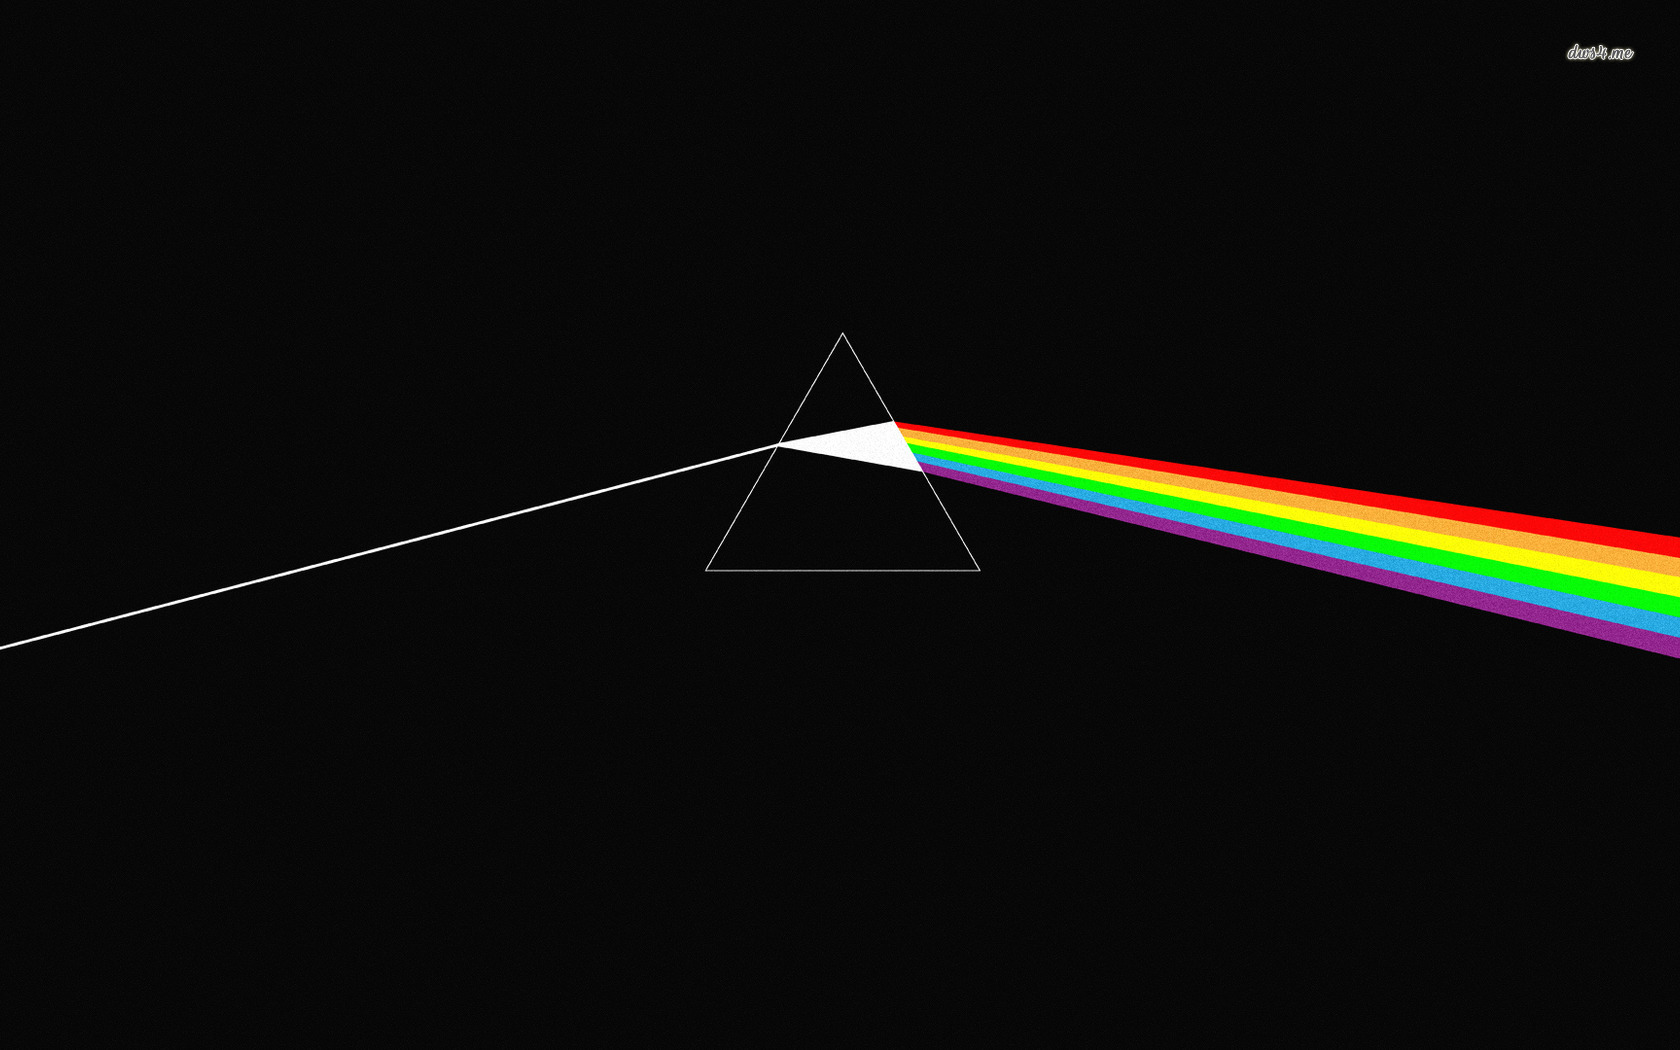 Dark Side Of The Moon Wallpaper 1680x1050